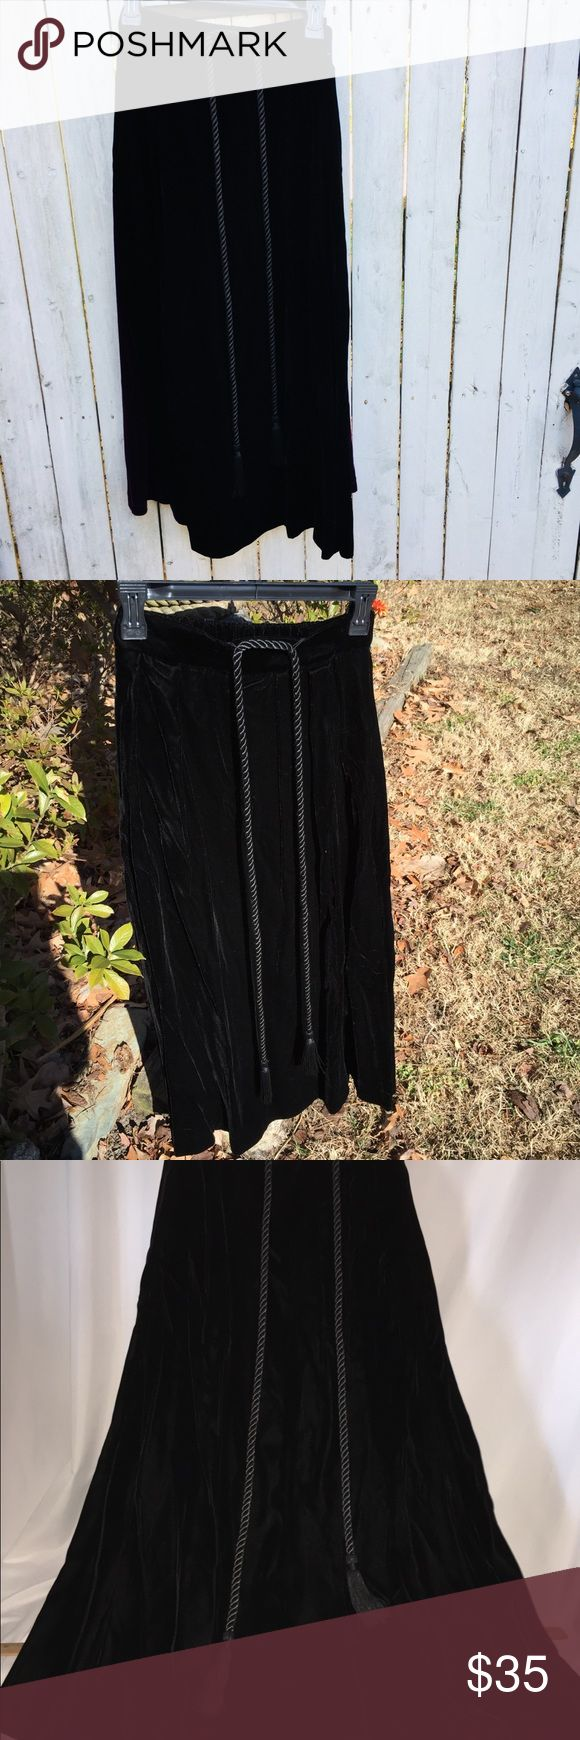 Vintage Susan Bristol black velvet long skirt tie Vintage velvet skirt long tassel tie is removable excellent condition very nice quality velvet lined skirt Susan Bristol Skirts A-Line or Full